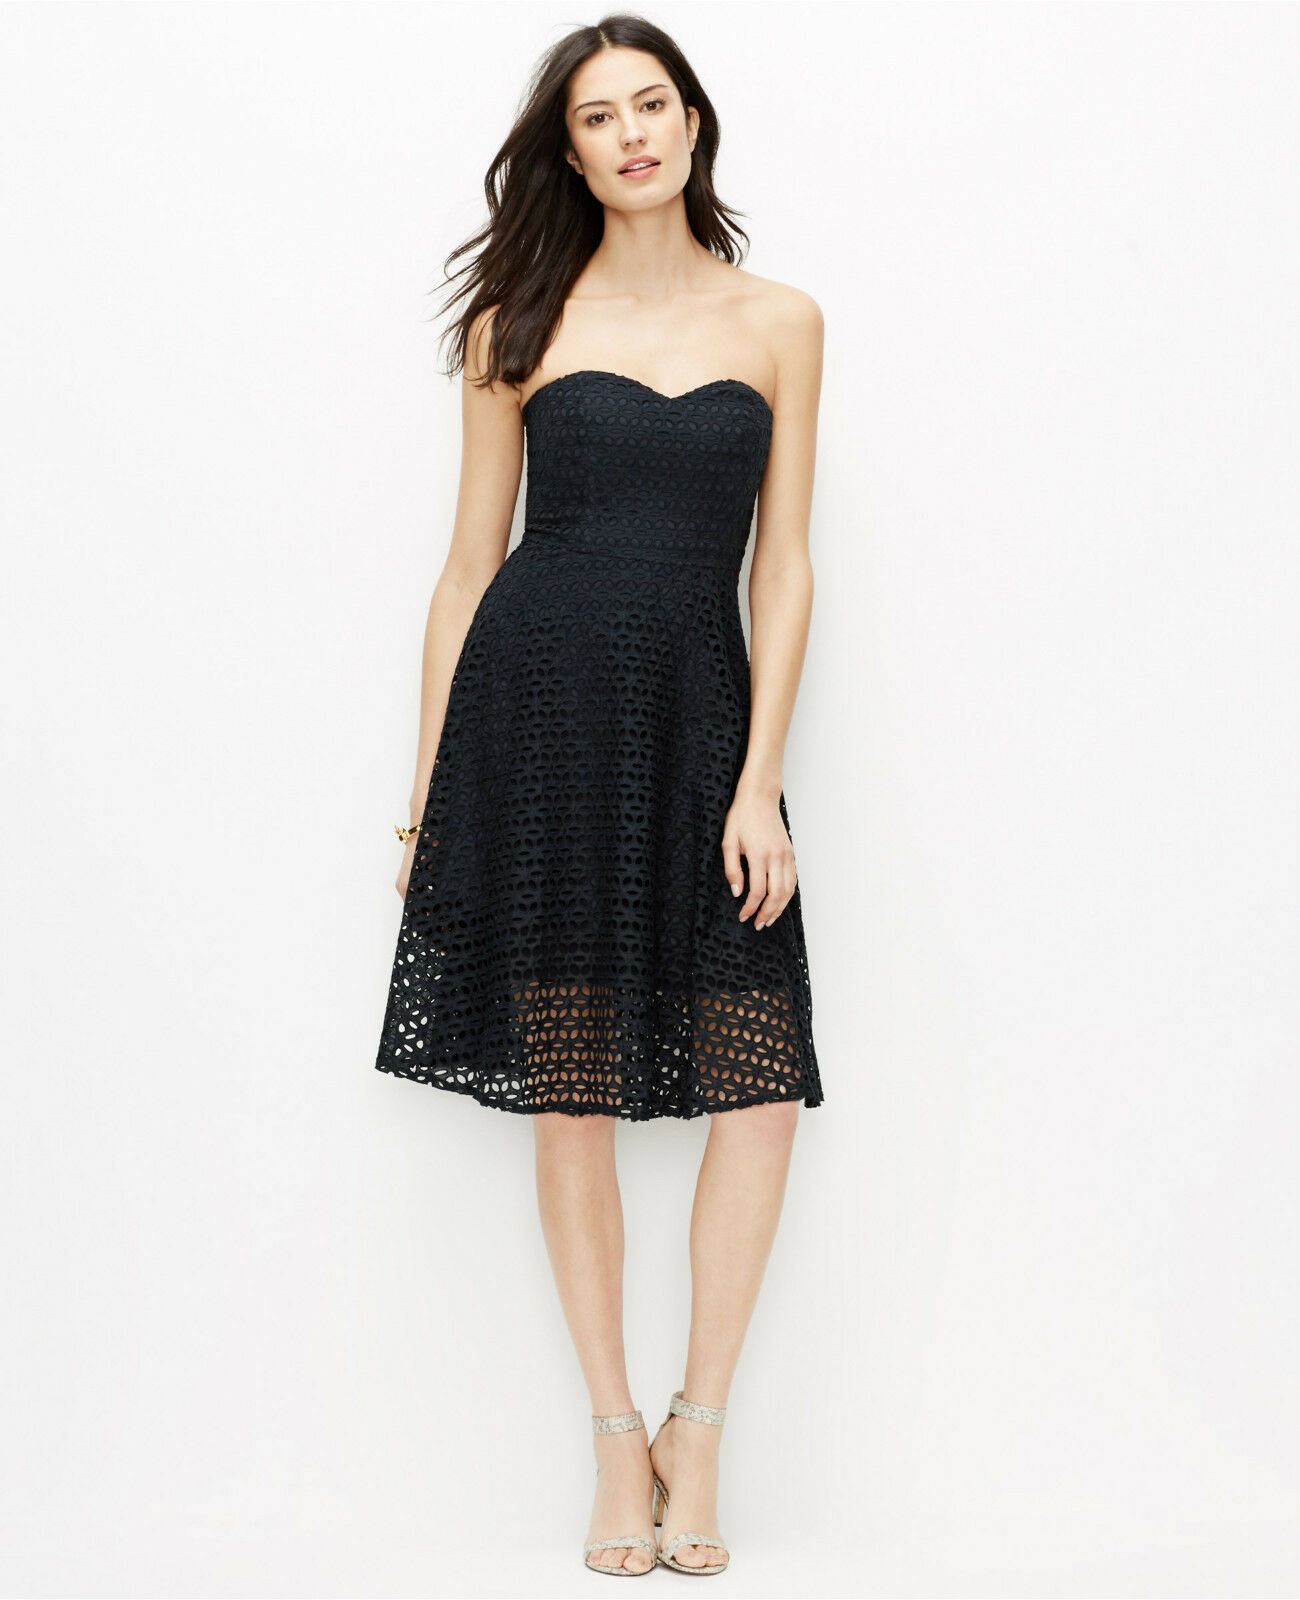 NWT $179 Ann Taylor Strapless Cotton Eyelet Dress Size 4 in Navy ...